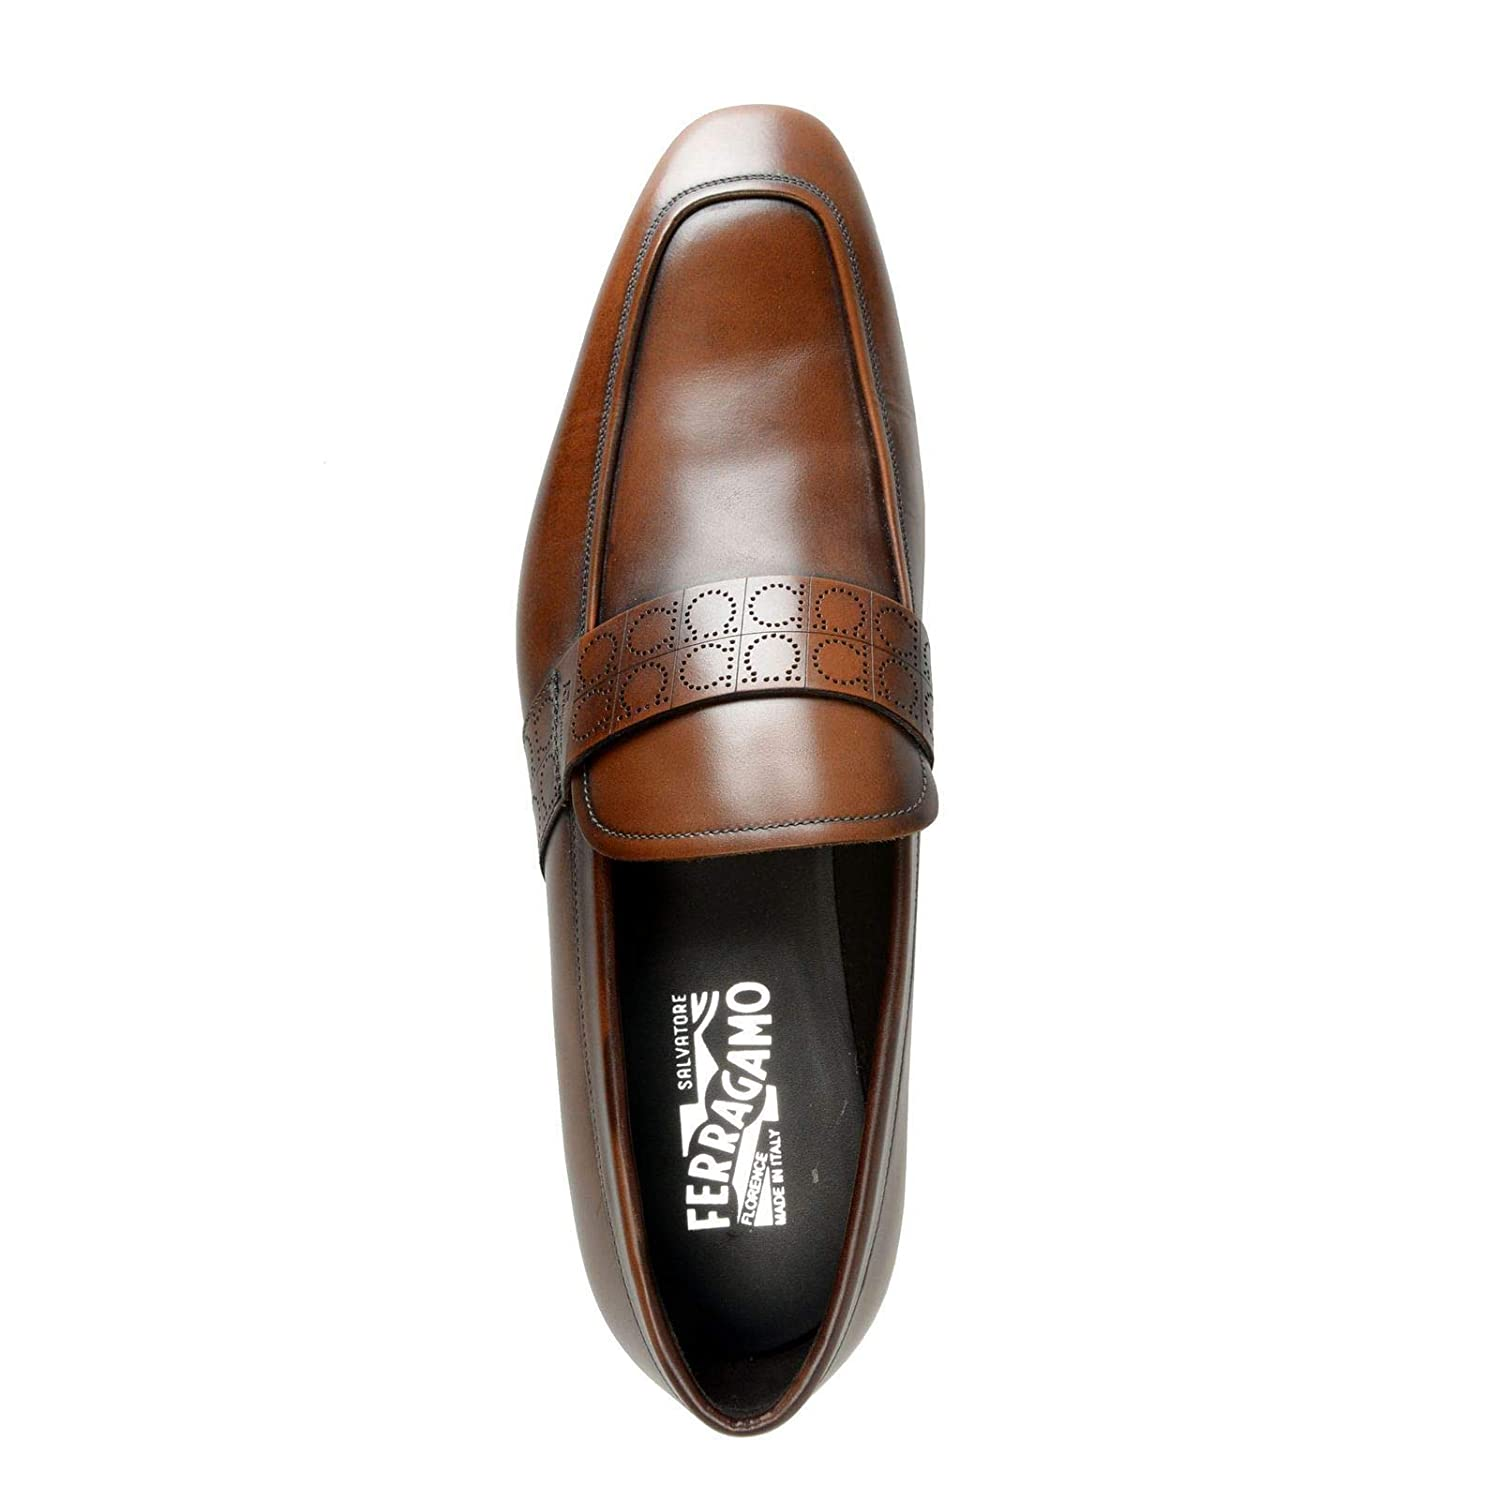 Amazon.com: Salvatore Ferragamo Mens Goliath Brown Leather Slip On Loafers Shoes US 10EE IT 43EE: Shoes